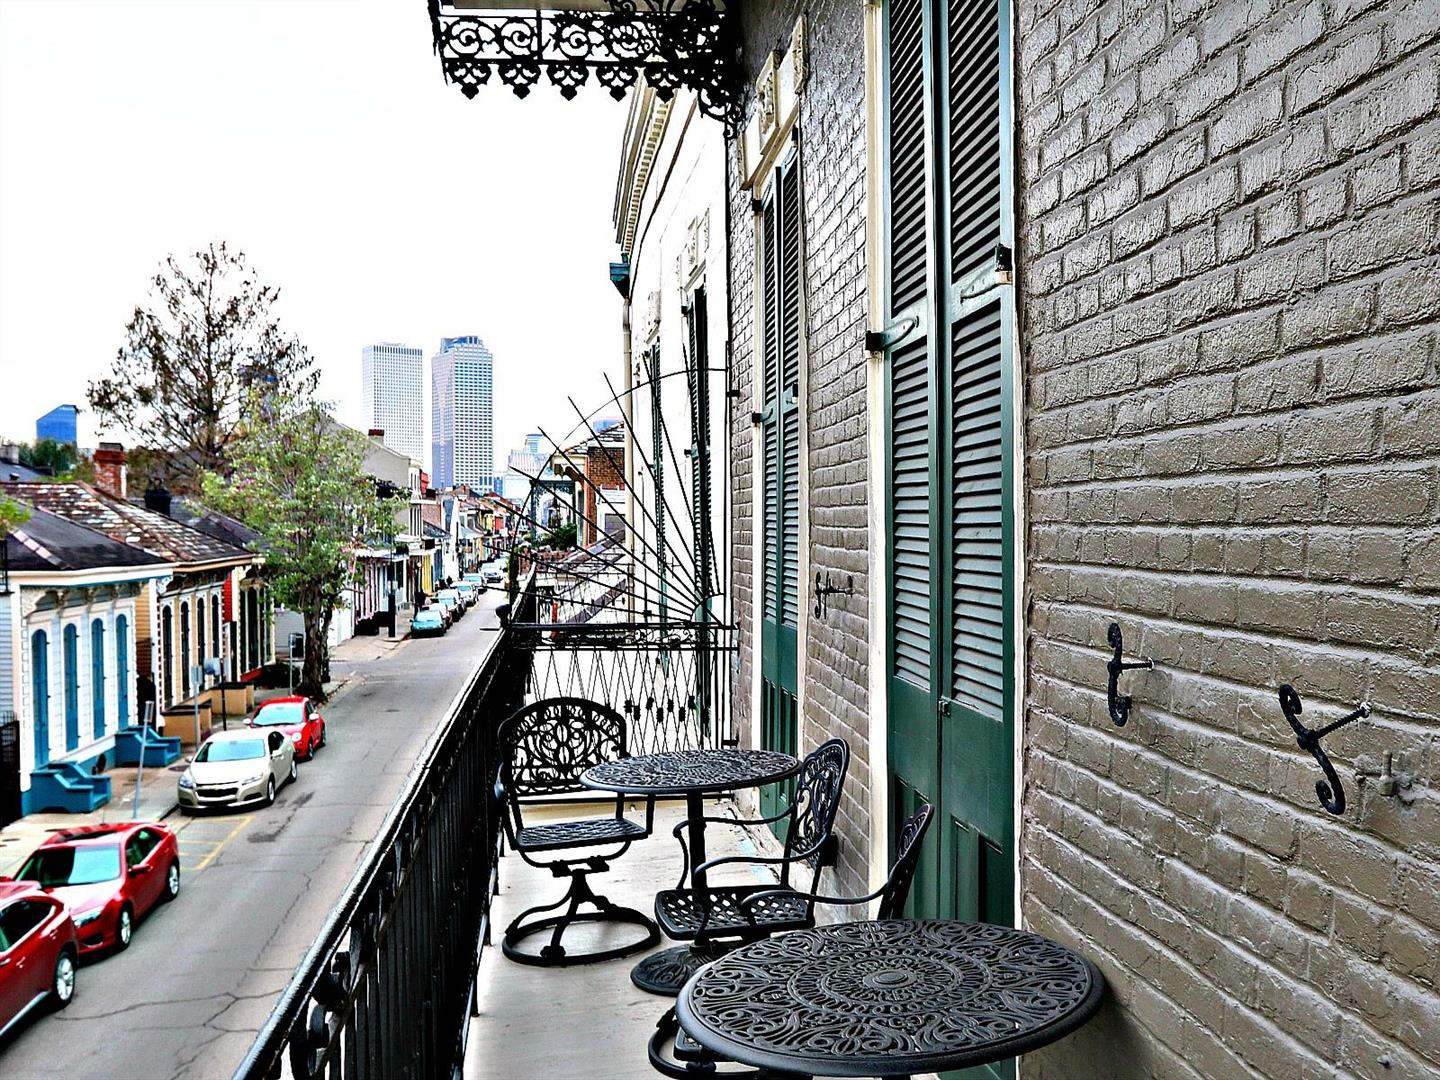 1225BourbonSt.ViewsandBalcony1.jpg